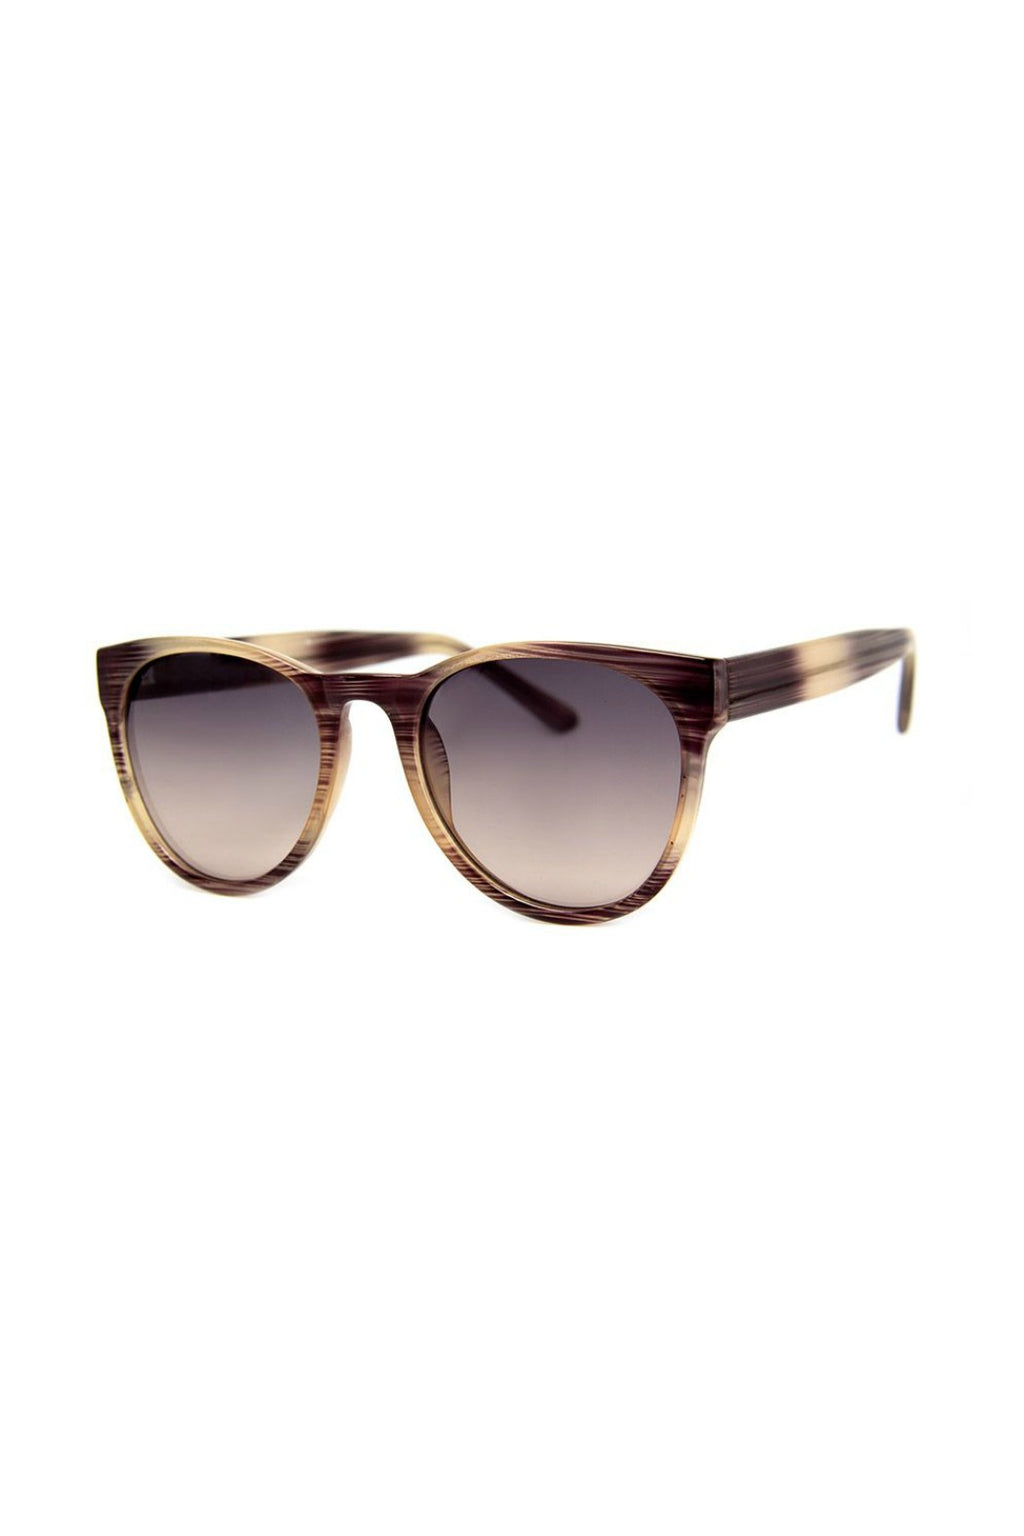 Clifton Sunnies